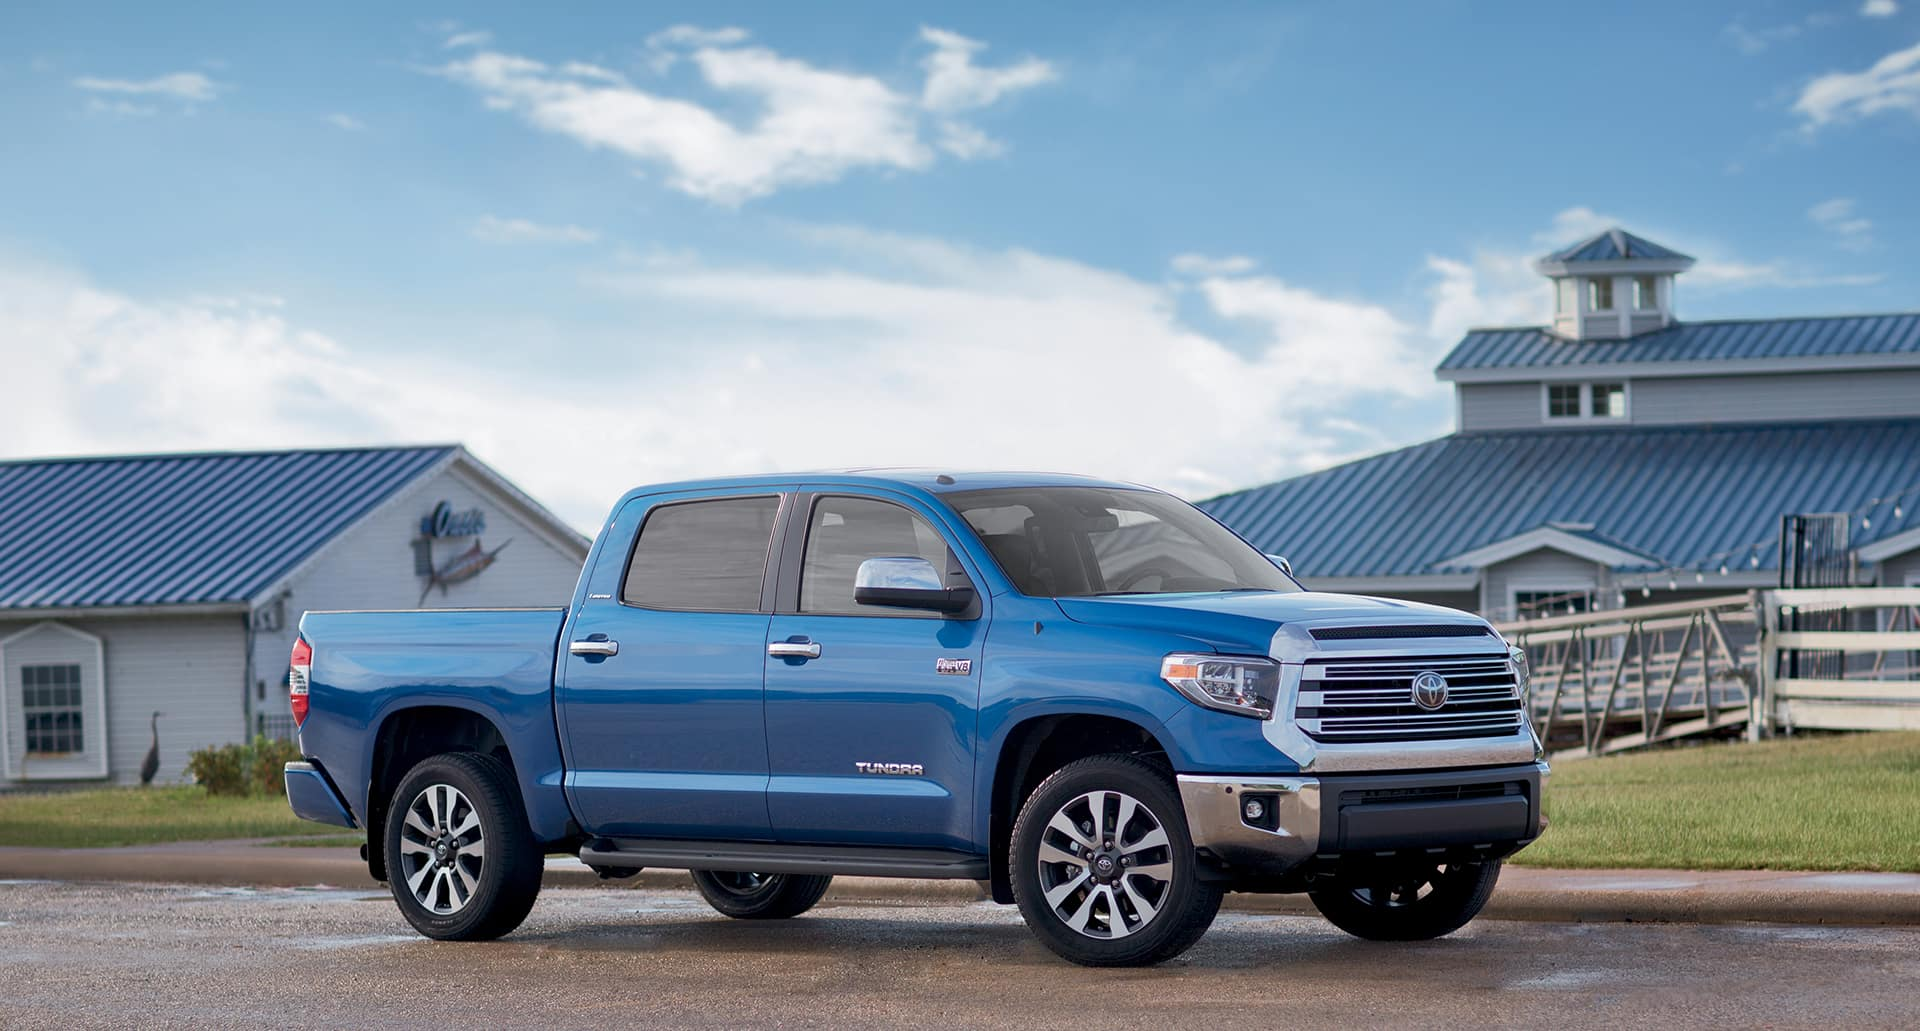 Blue 2018 Toyota Tundra parked in front of a Barn